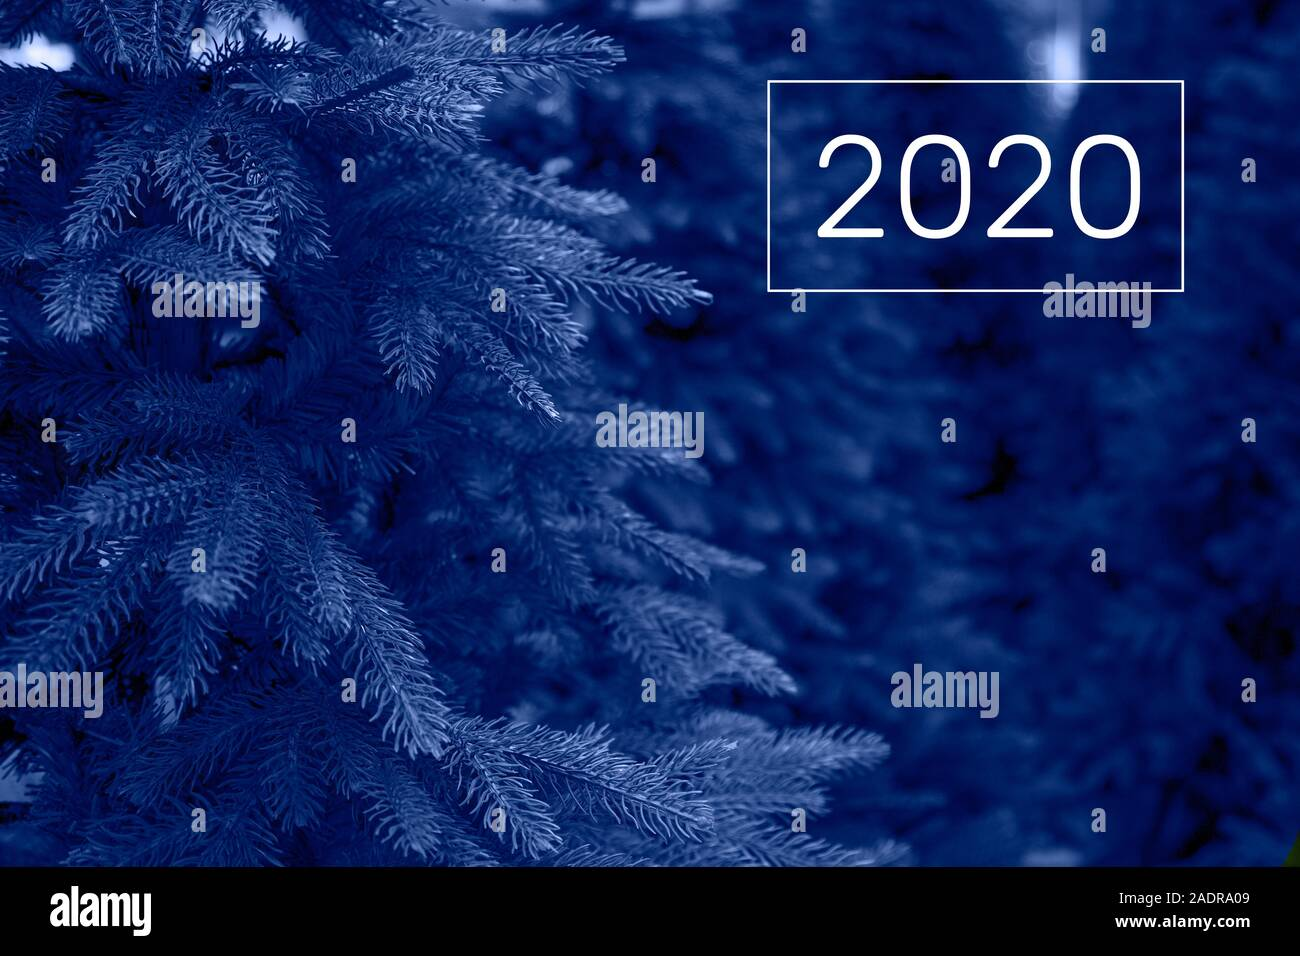 Christmas Trees For Sale In The Shop Color Of The Year 2020 Stock Photo Alamy